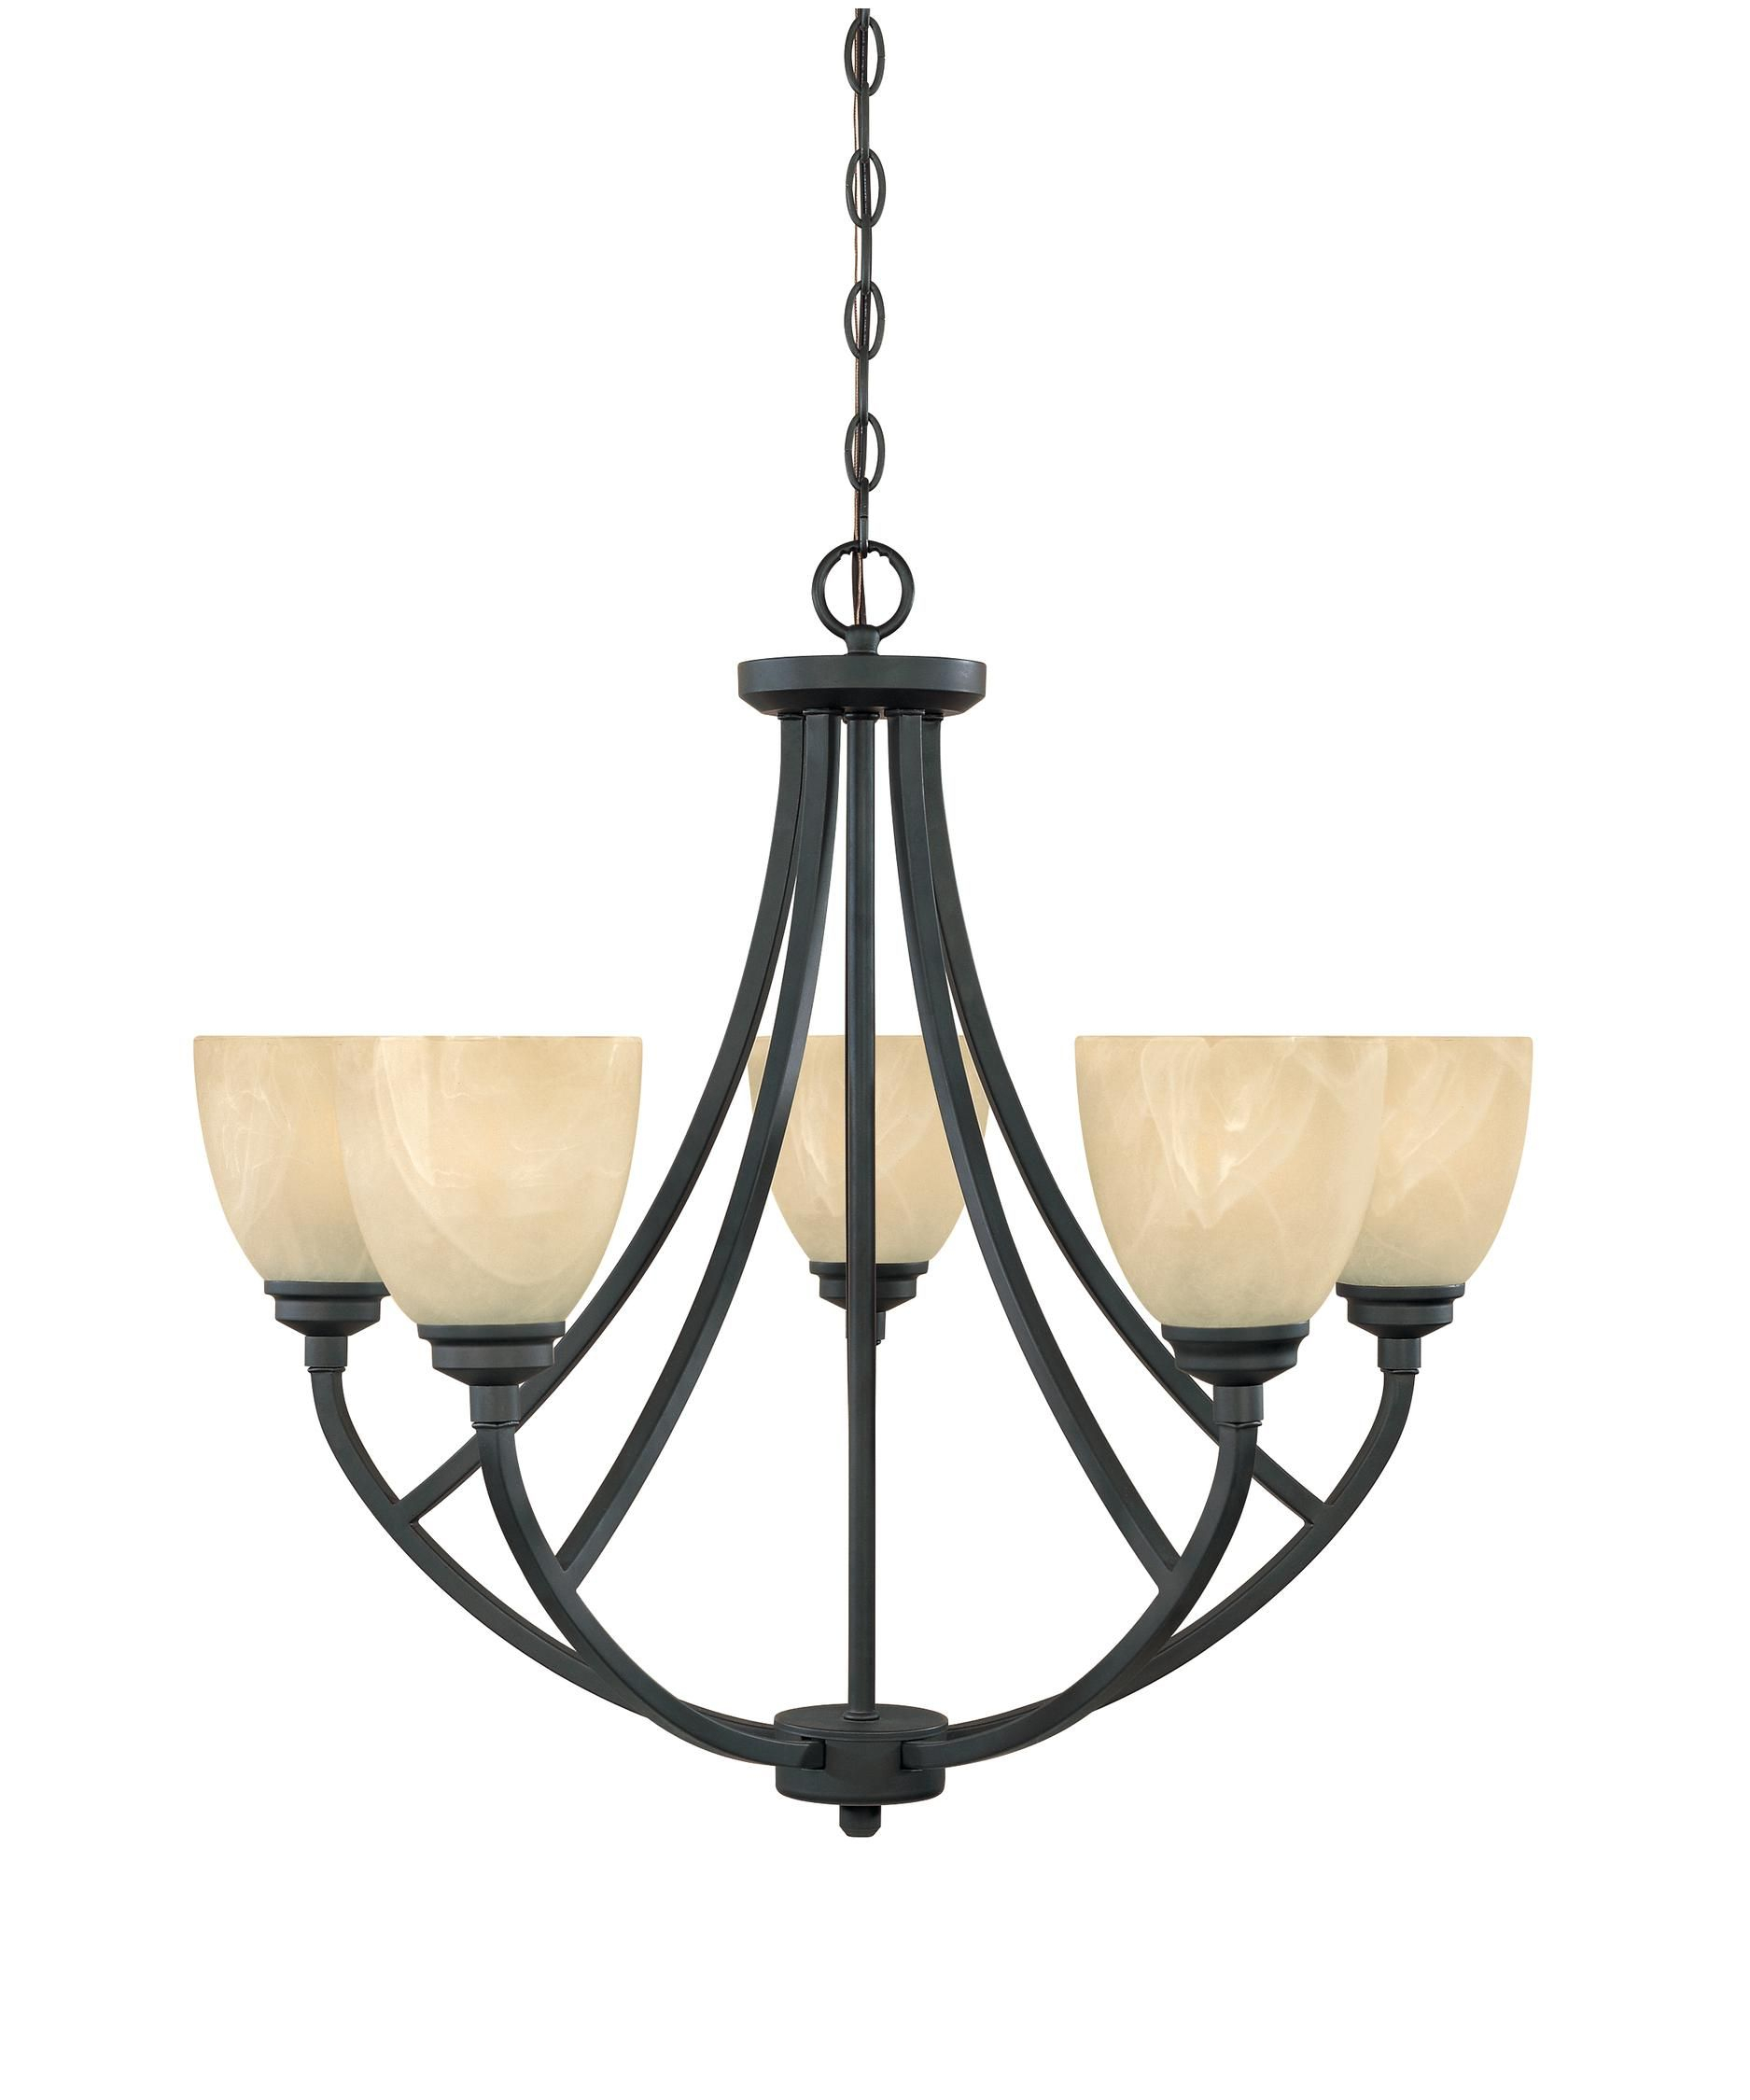 Tackwood 27 Inch 5 Light Chandelierdesigners Fountain with Suki 5-Light Shaded Chandeliers (Image 27 of 30)